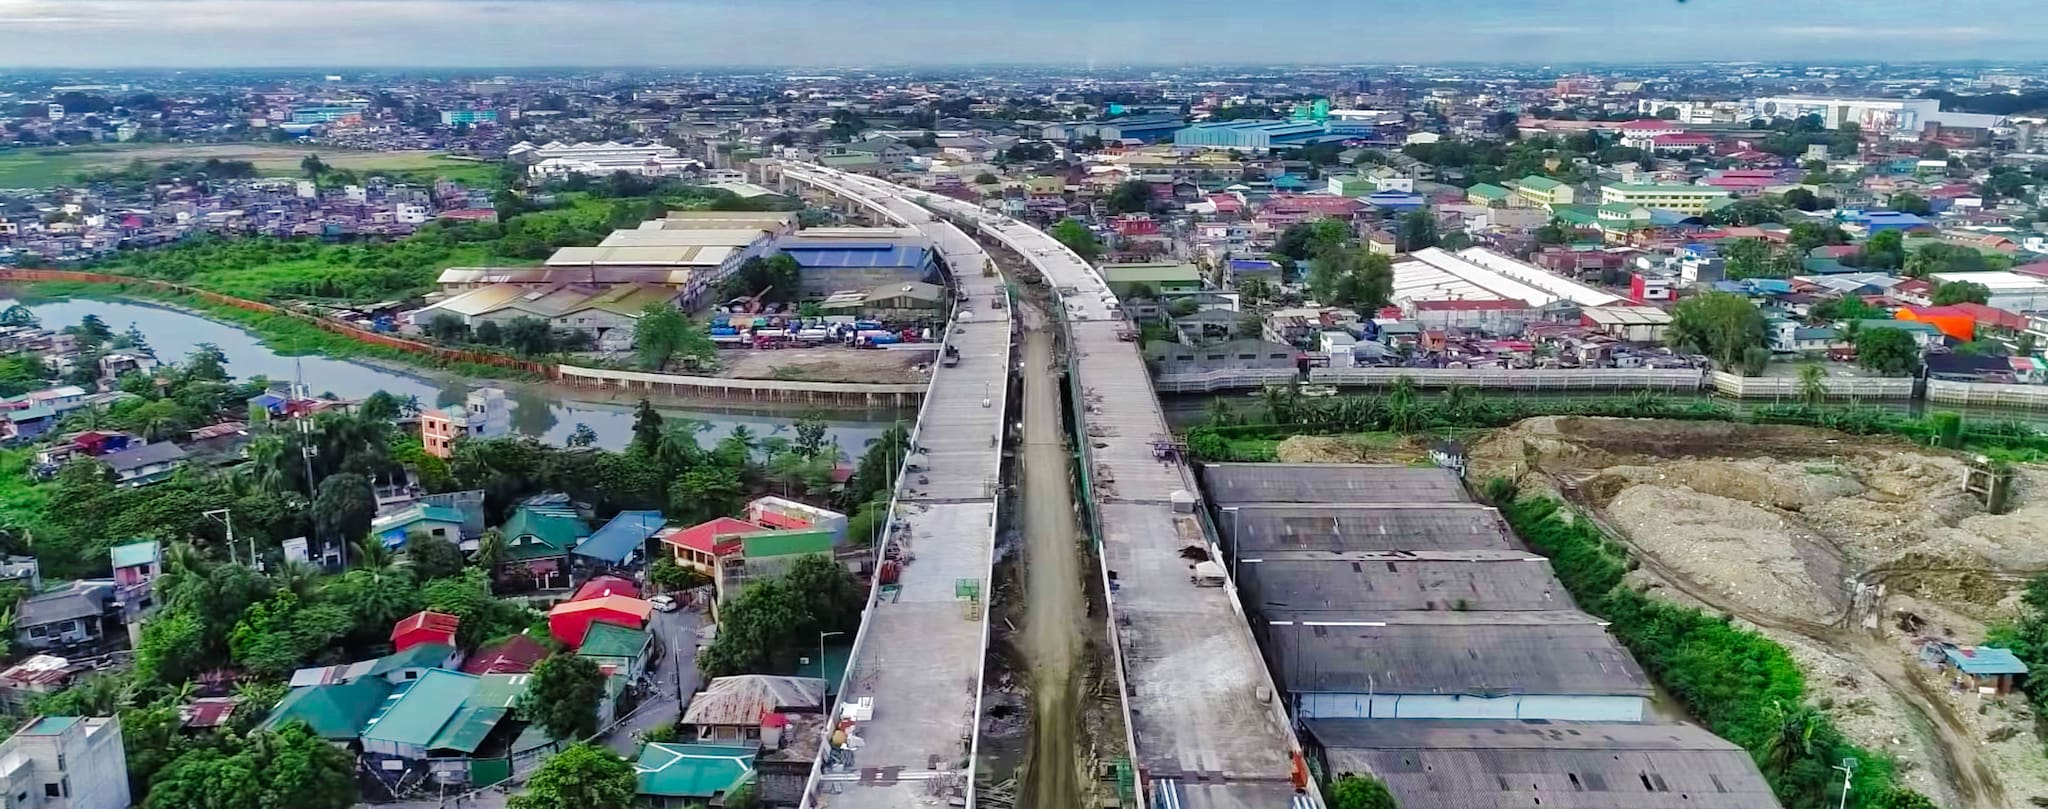 Construction of NLEX Harbor Link Segment 10 C3-R10 to Start This Weekend